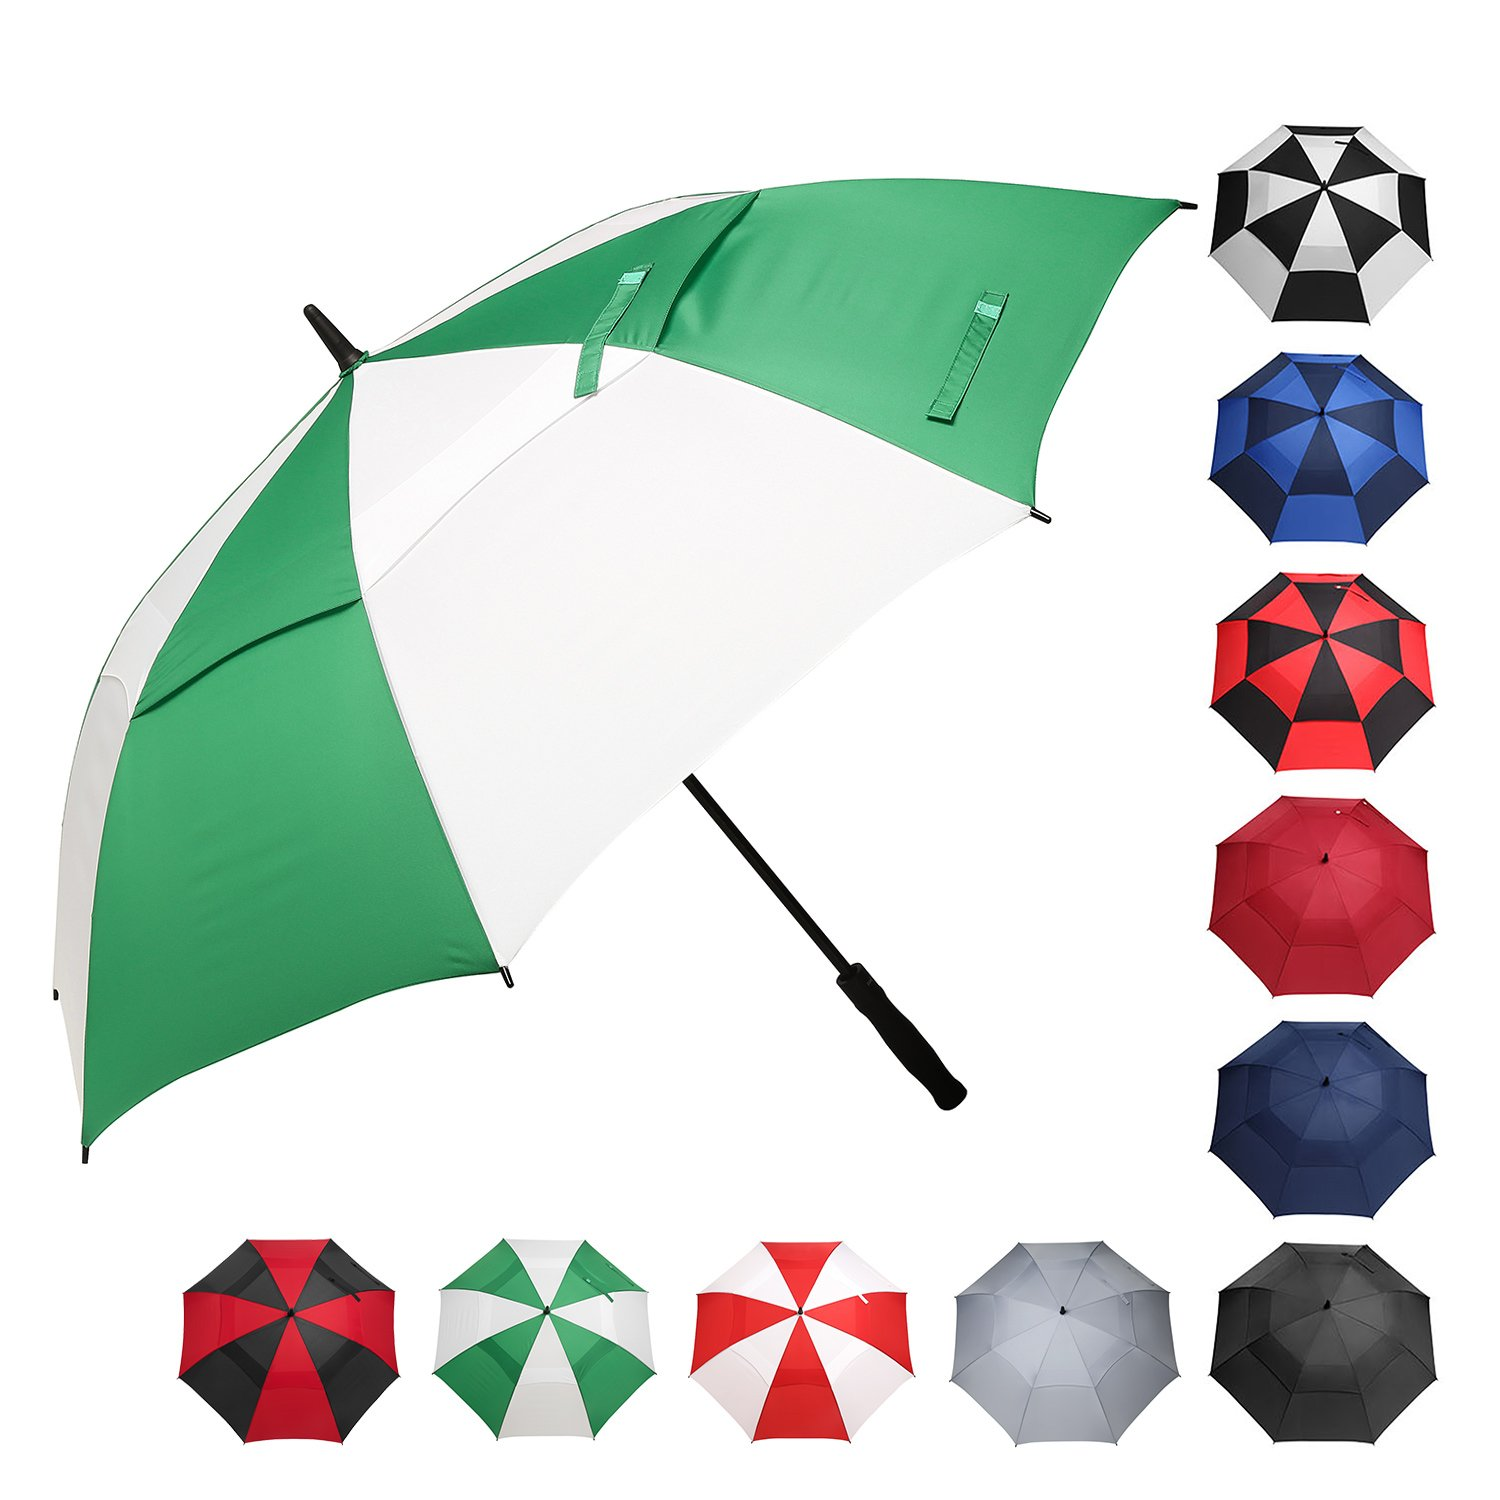 BAGAIL Golf Umbrella 68/62/58 Inch Large Oversize Double Canopy Vented Windproof Waterproof Automatic Open Stick Umbrellas for Men and Women (Double Green White, 58 inch) by BAGAIL